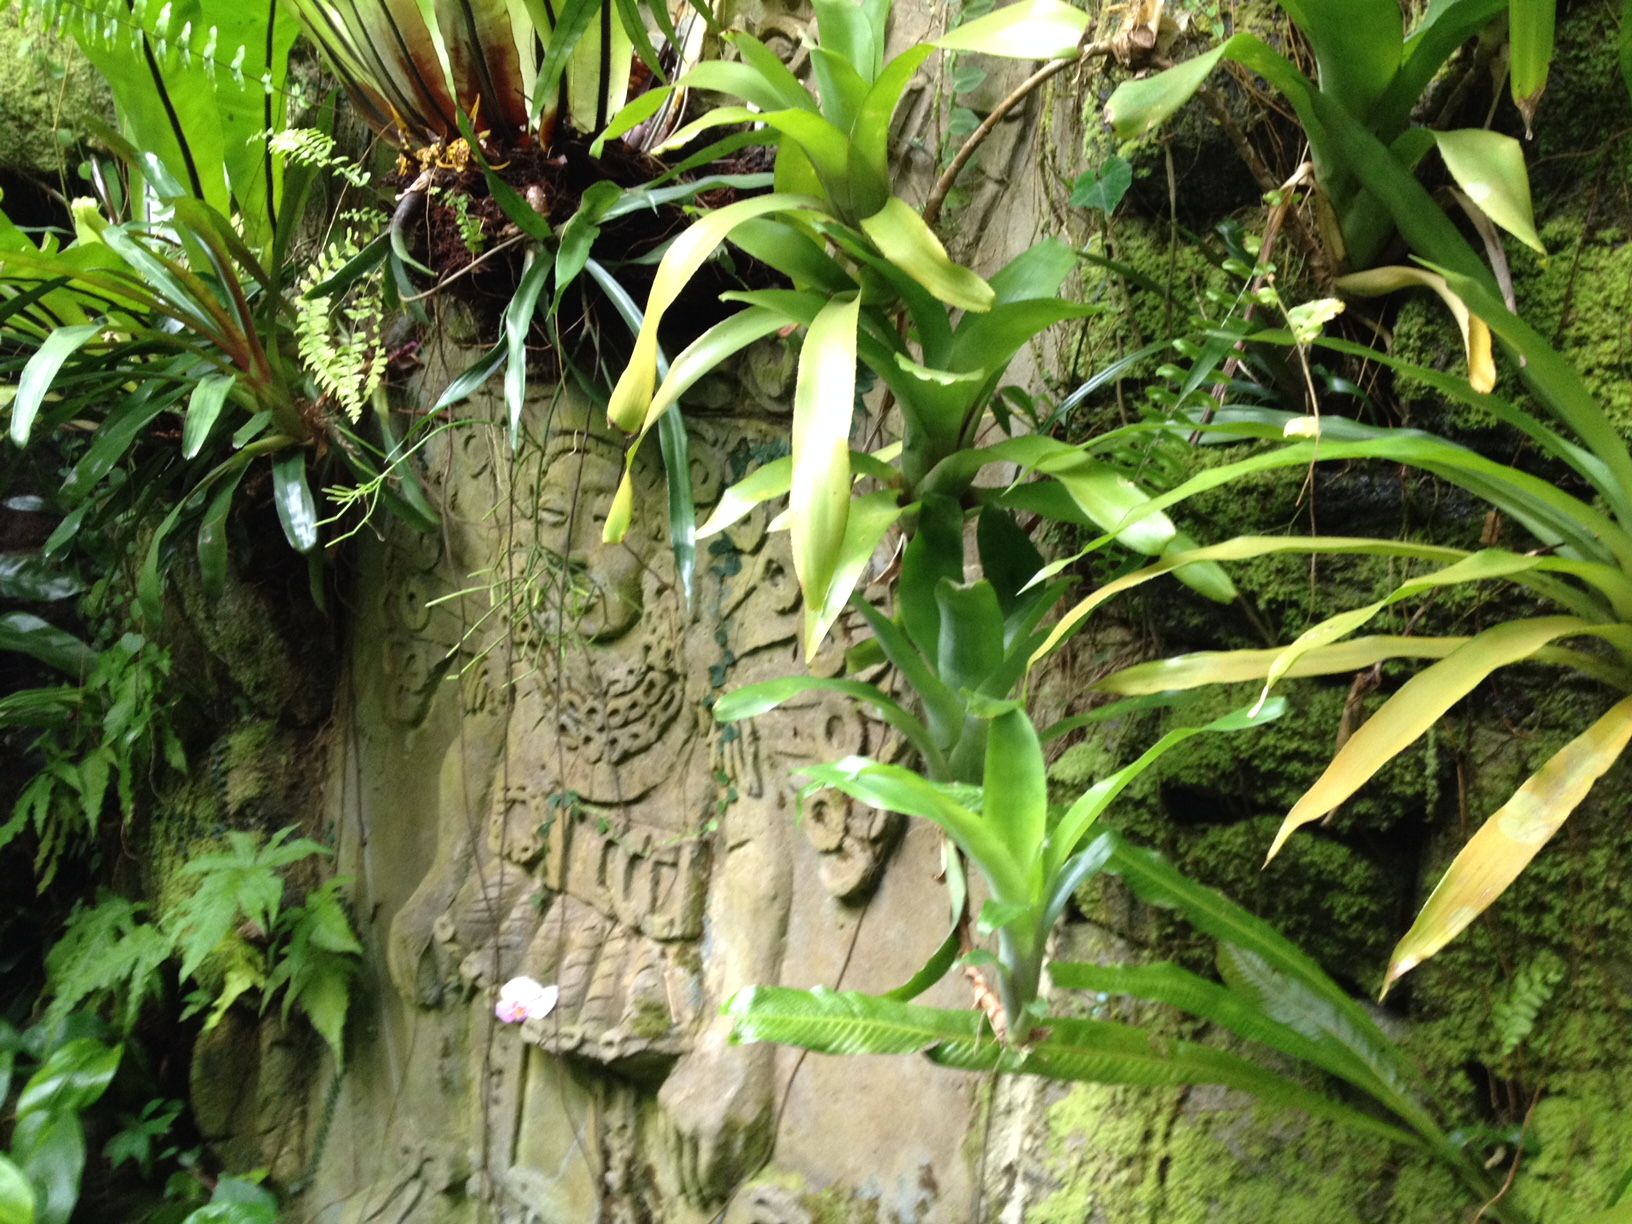 Leafy ferns surround a face carved into a stone wall